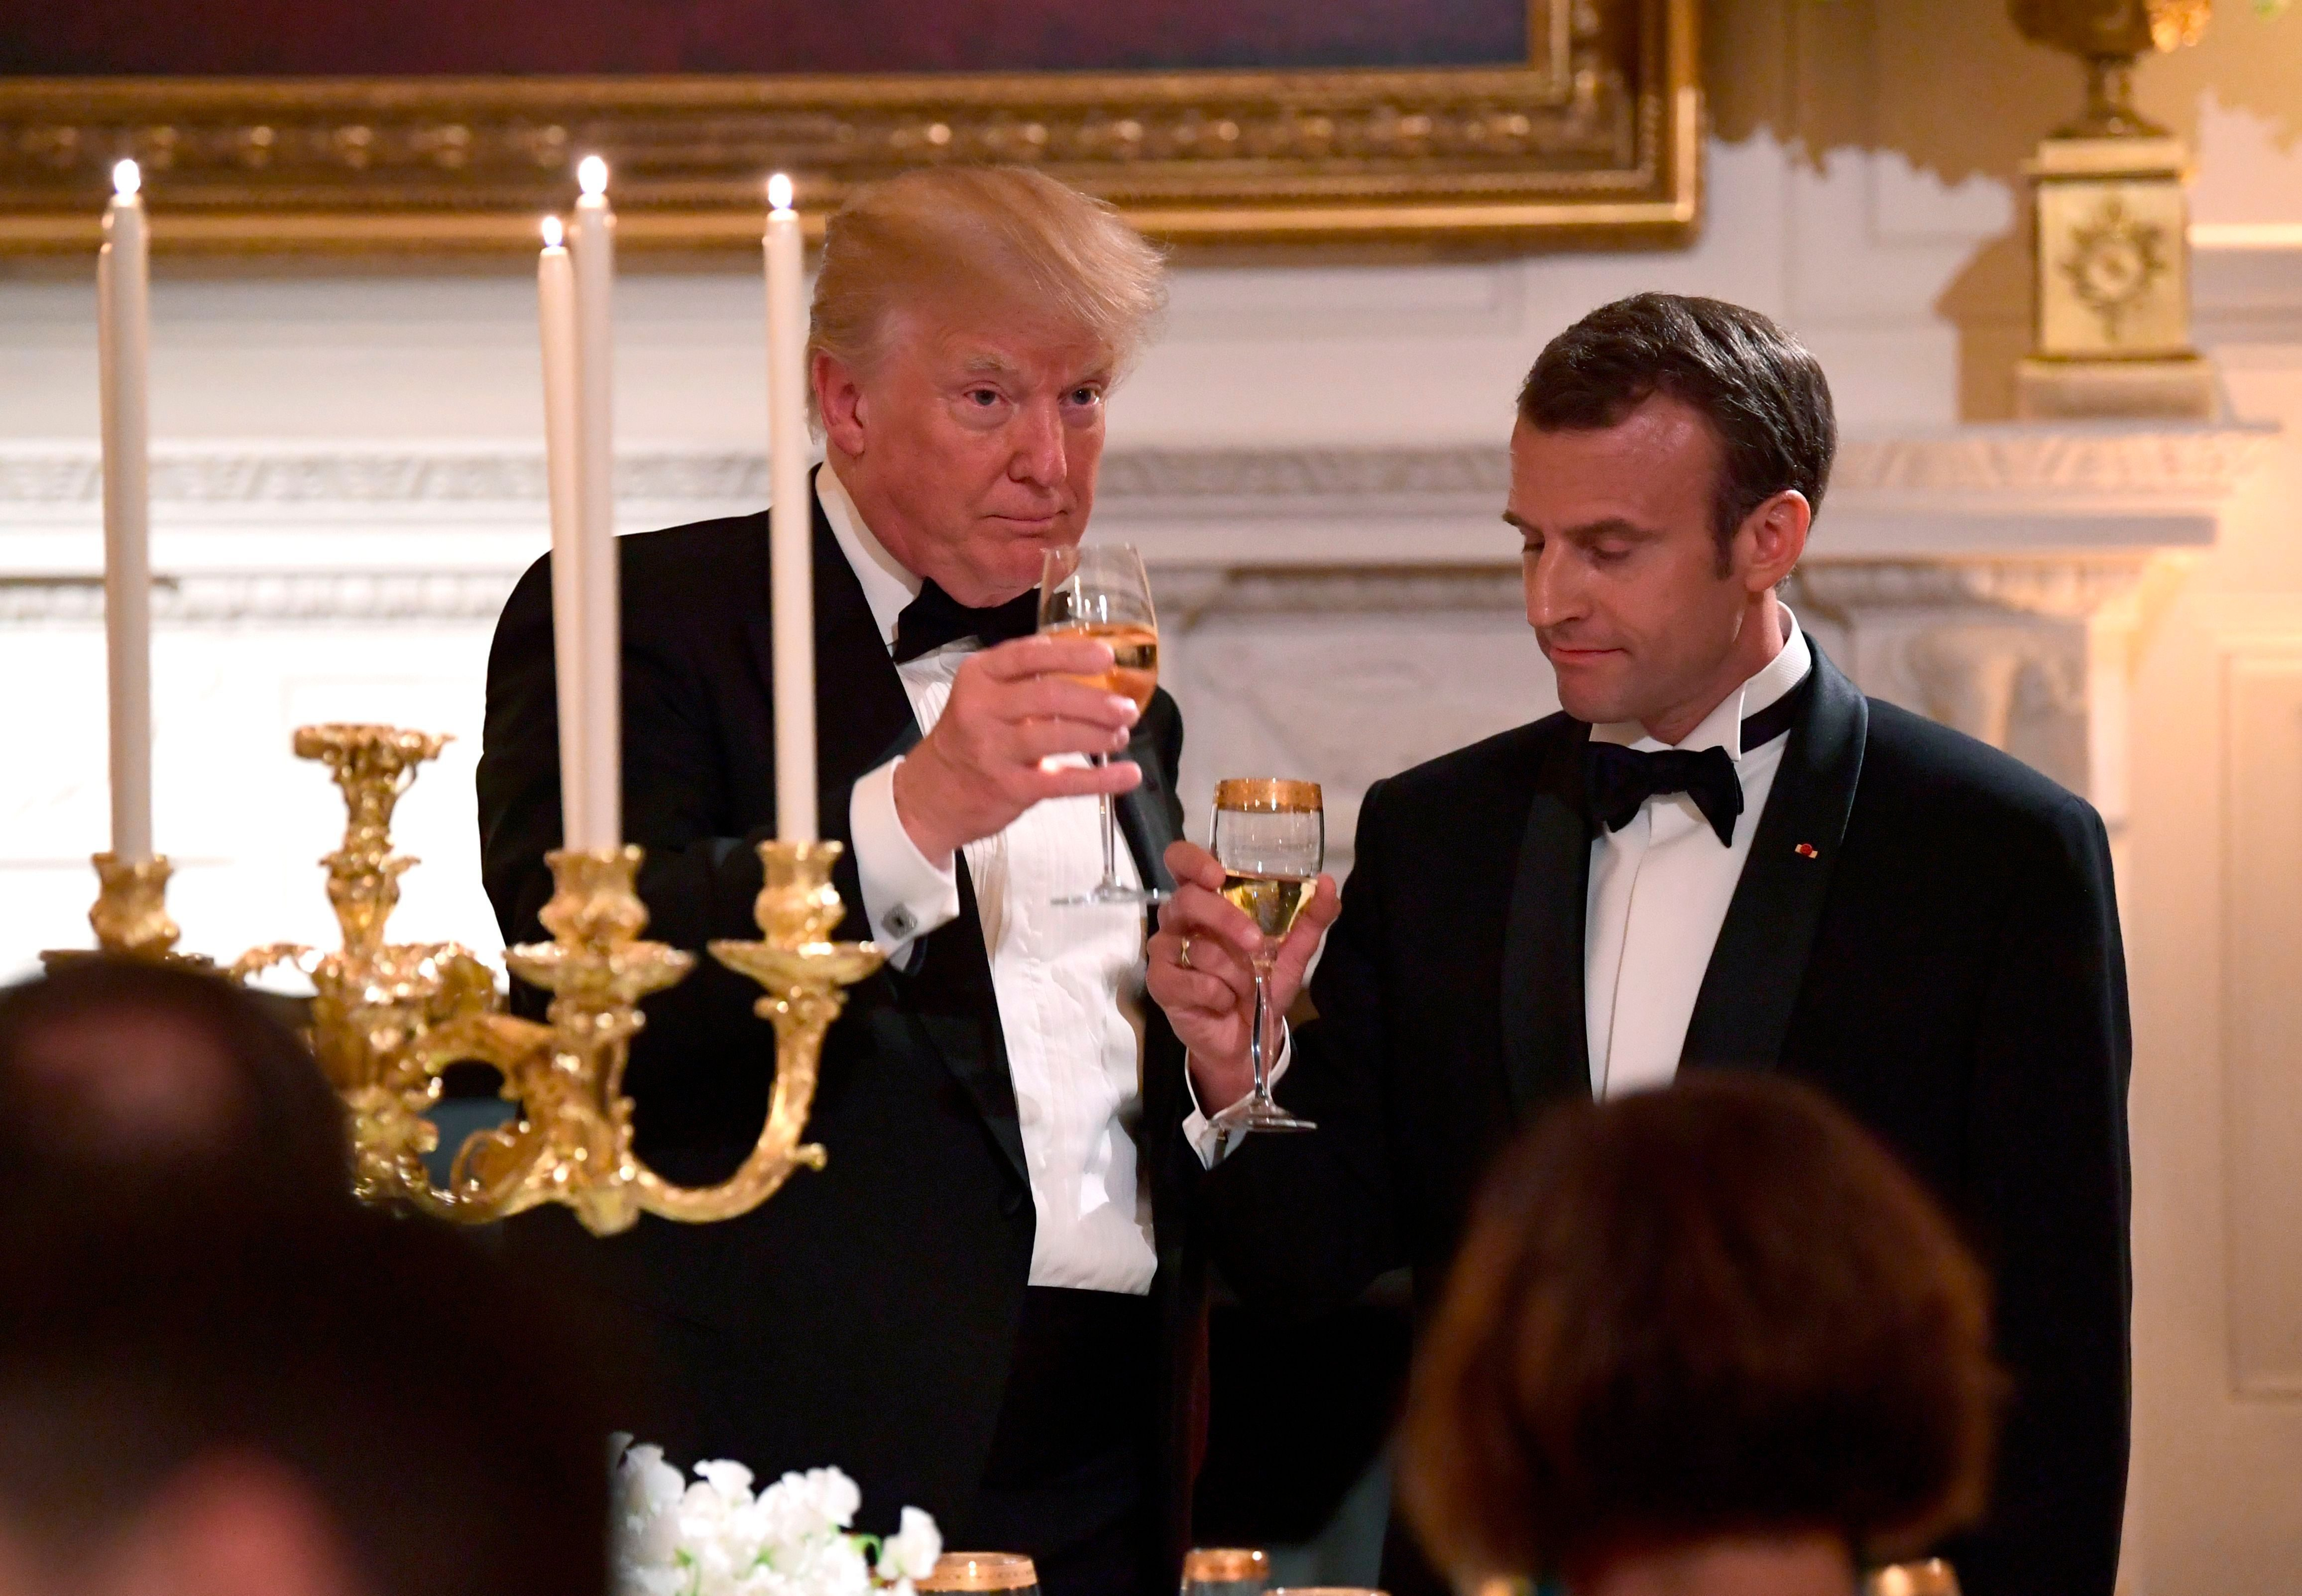 Mandatory Credit: Photo by Susan Walsh/AP/Shutterstock (9641564j) President Donald Trump and French President Emmanuel Macron toast in the State Dining Room during a State Dinner at the White House in Washington Trump US France, Washington, USA - 24 Apr 2018